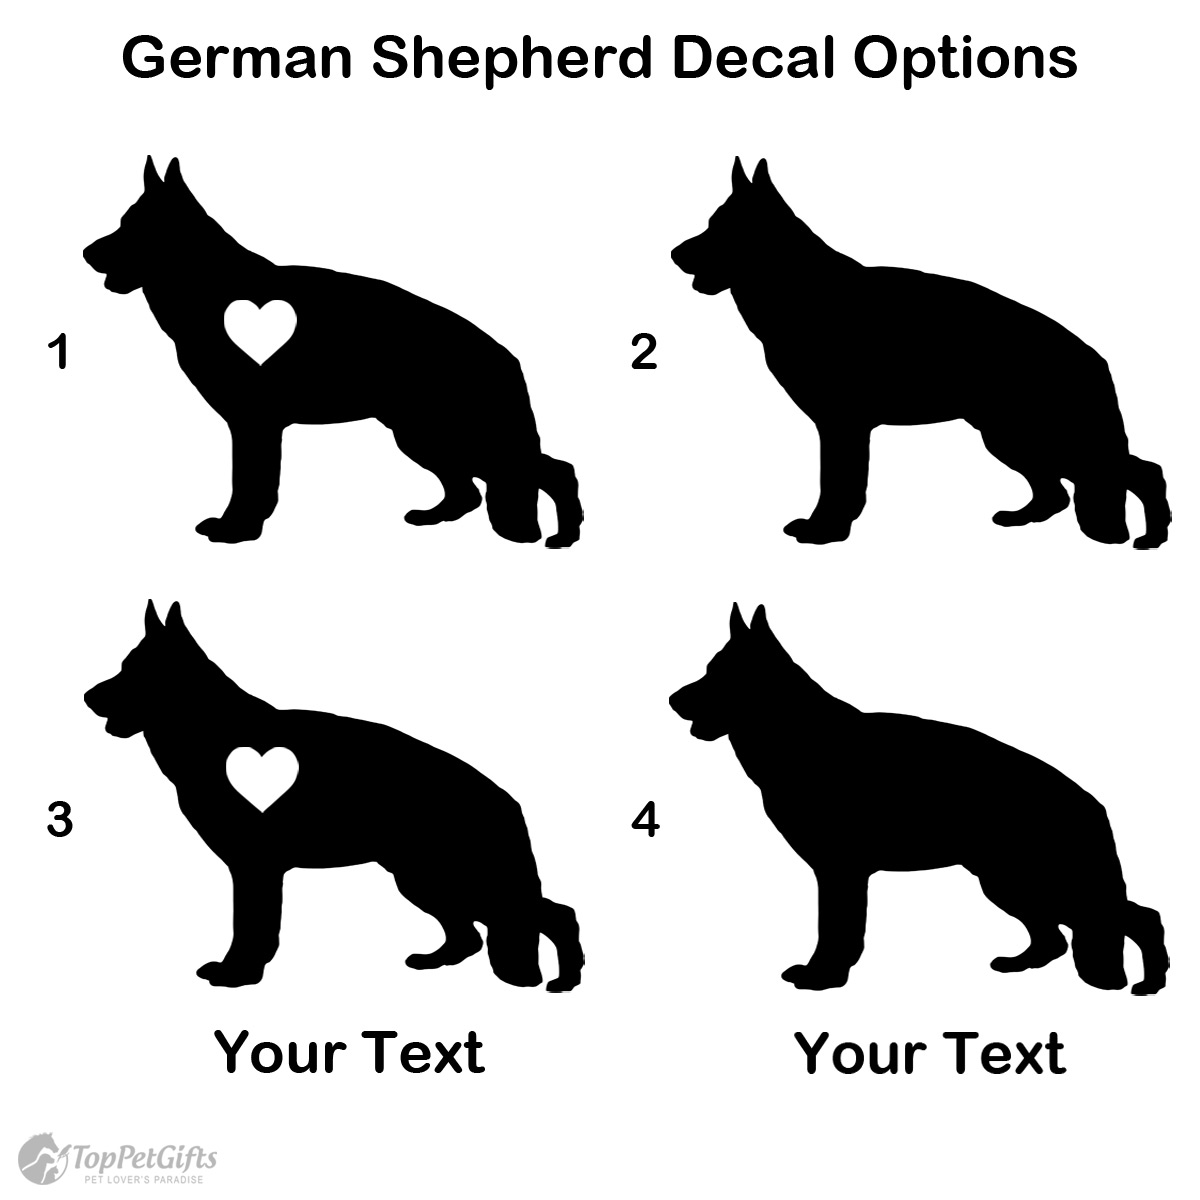 Personalized German Shepherd Decal